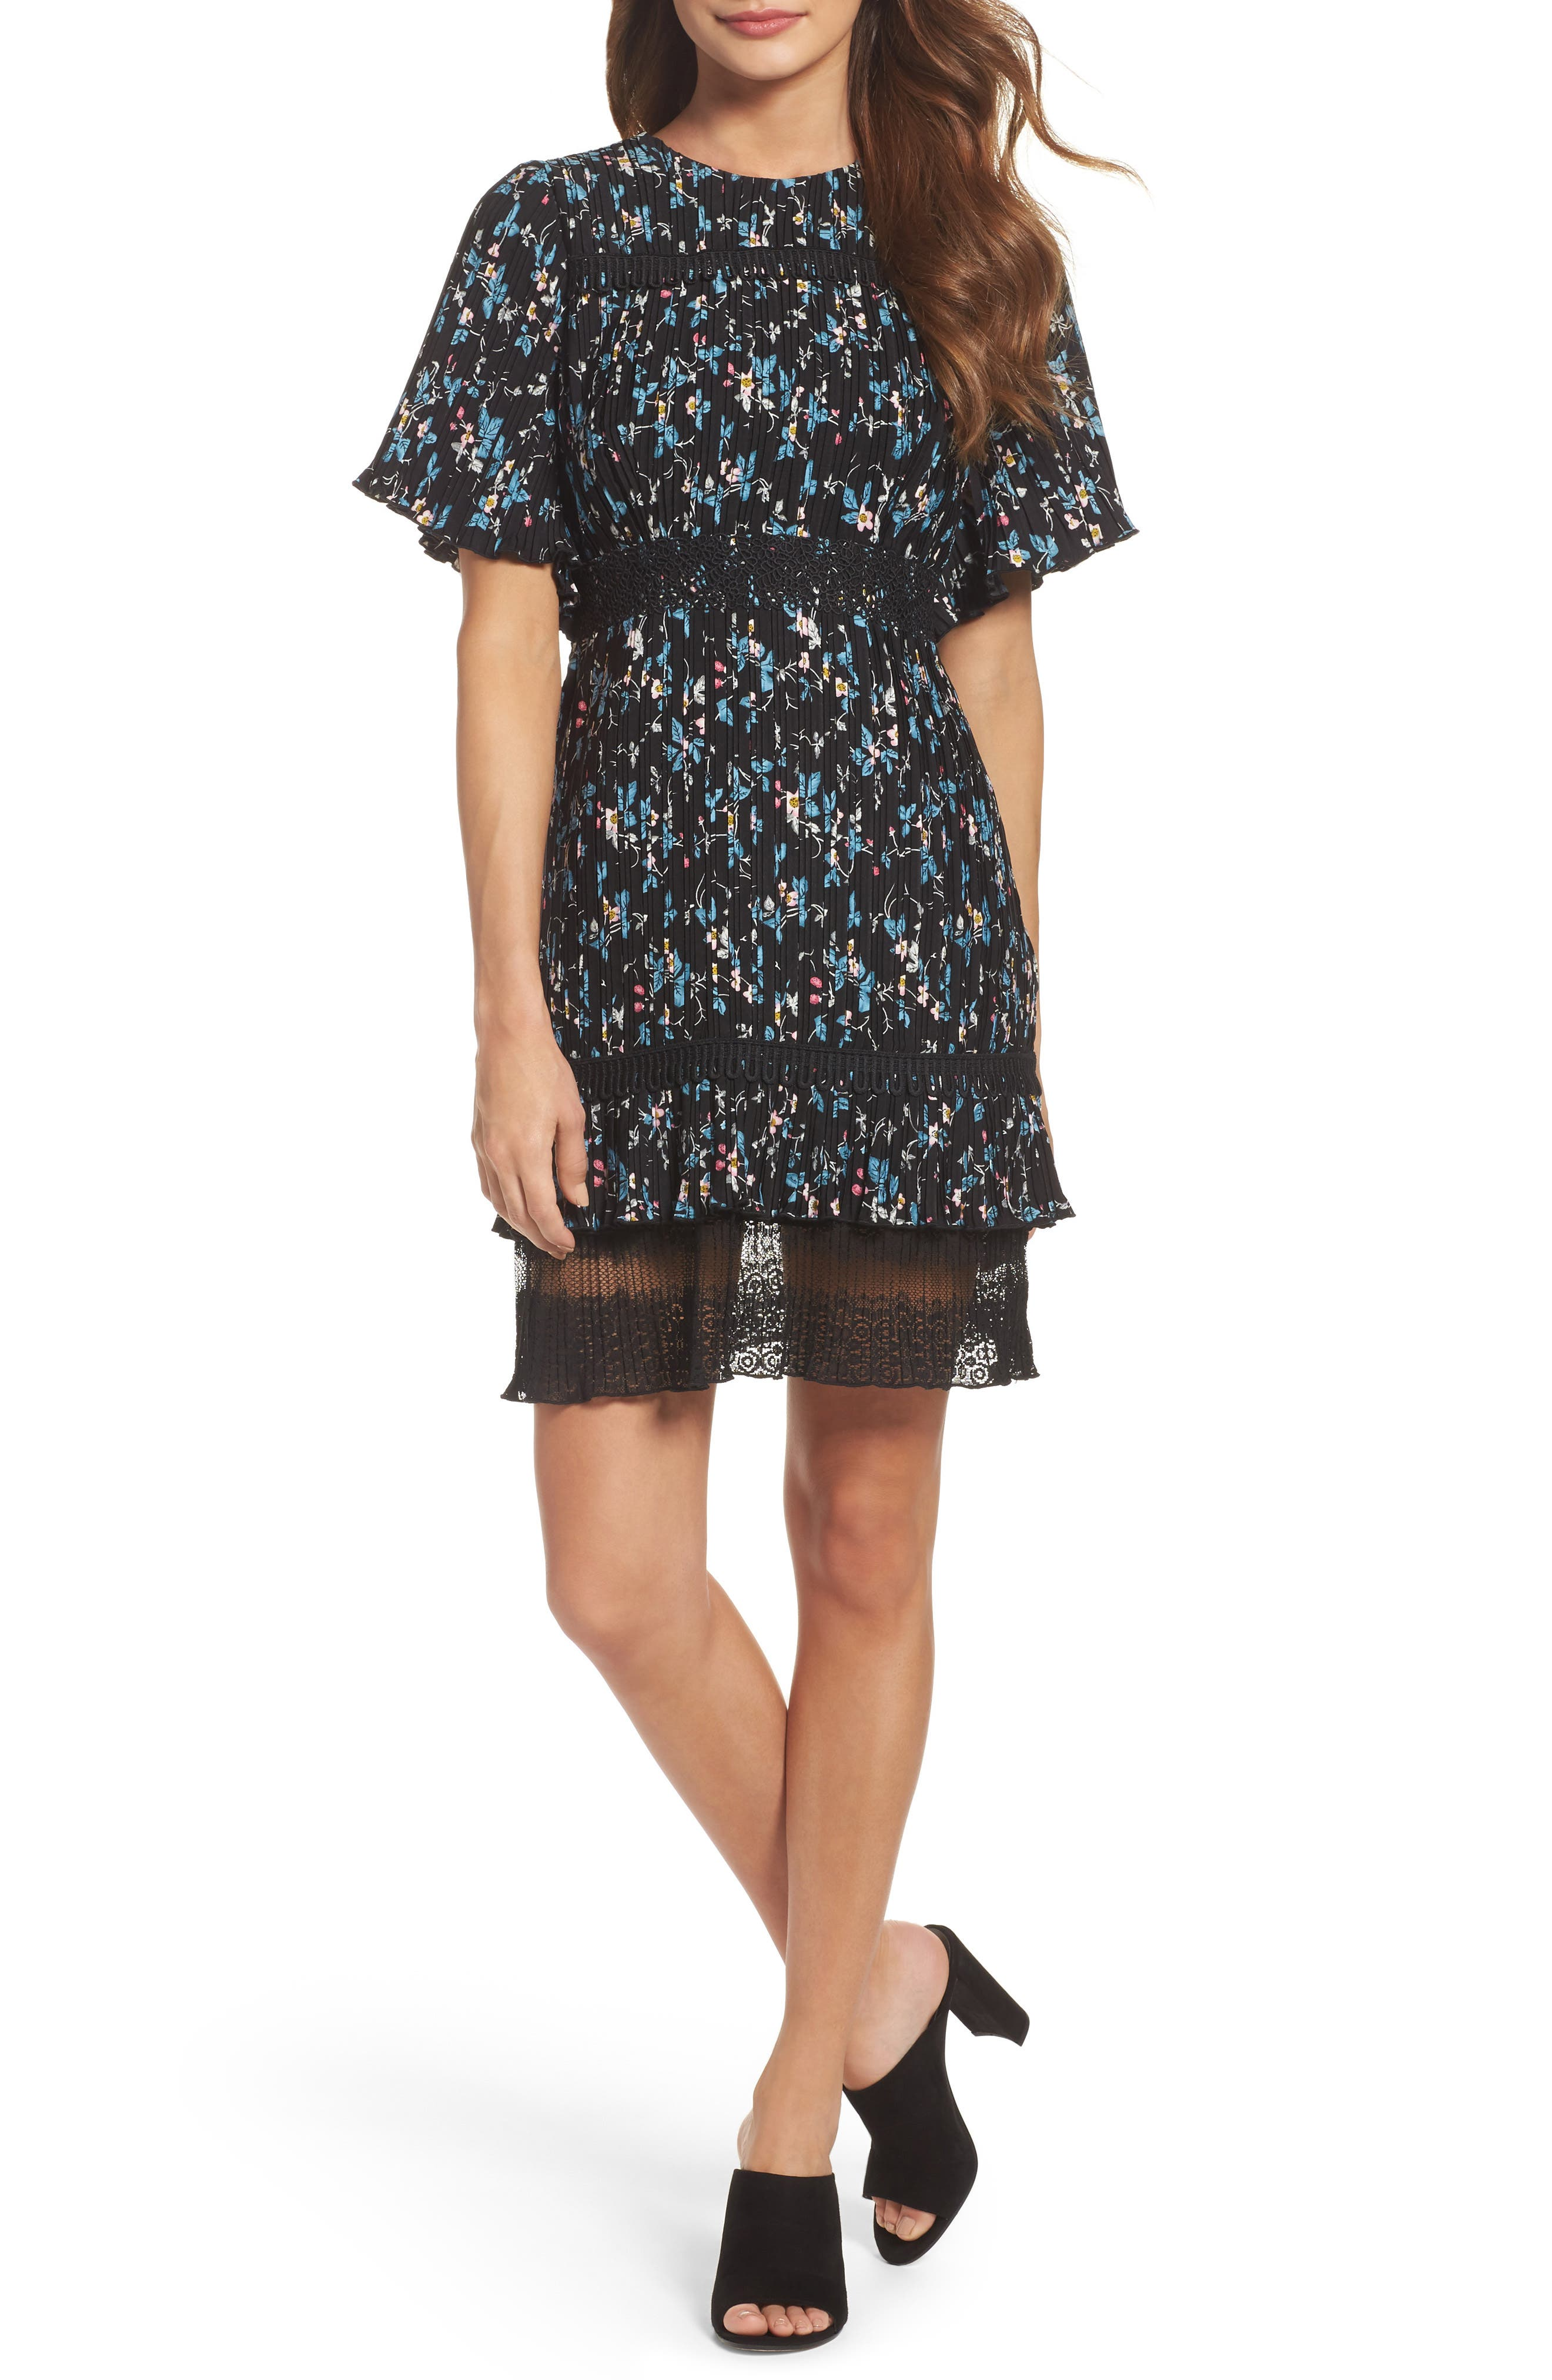 Alternate Image 1 Selected - Chelsea28 Pleated Lace Dress